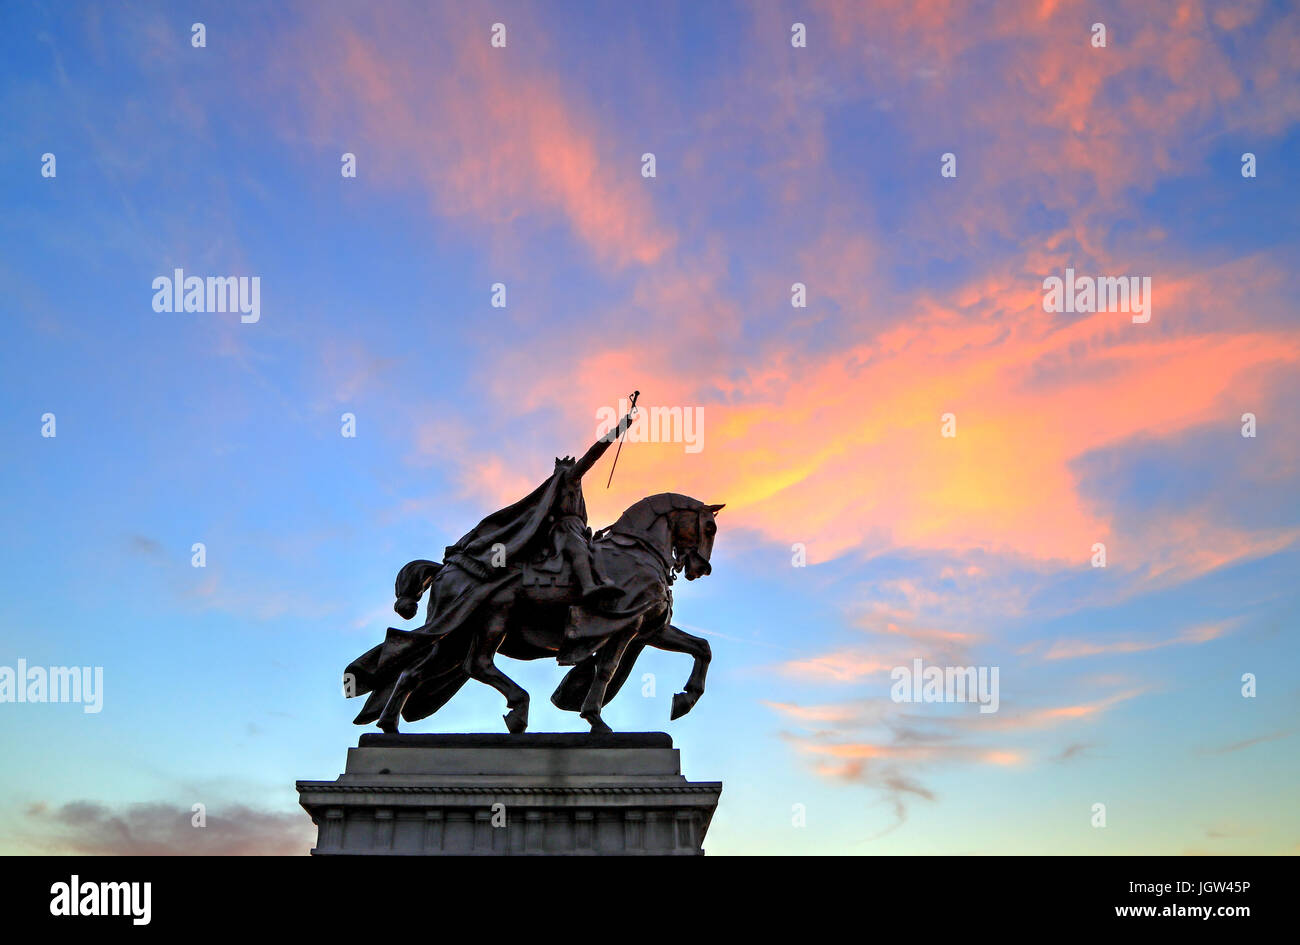 The sunset over the Apotheosis of St. Louis statue of King Louis IX of France, namesake of St. Louis, Missouri in - Stock Image